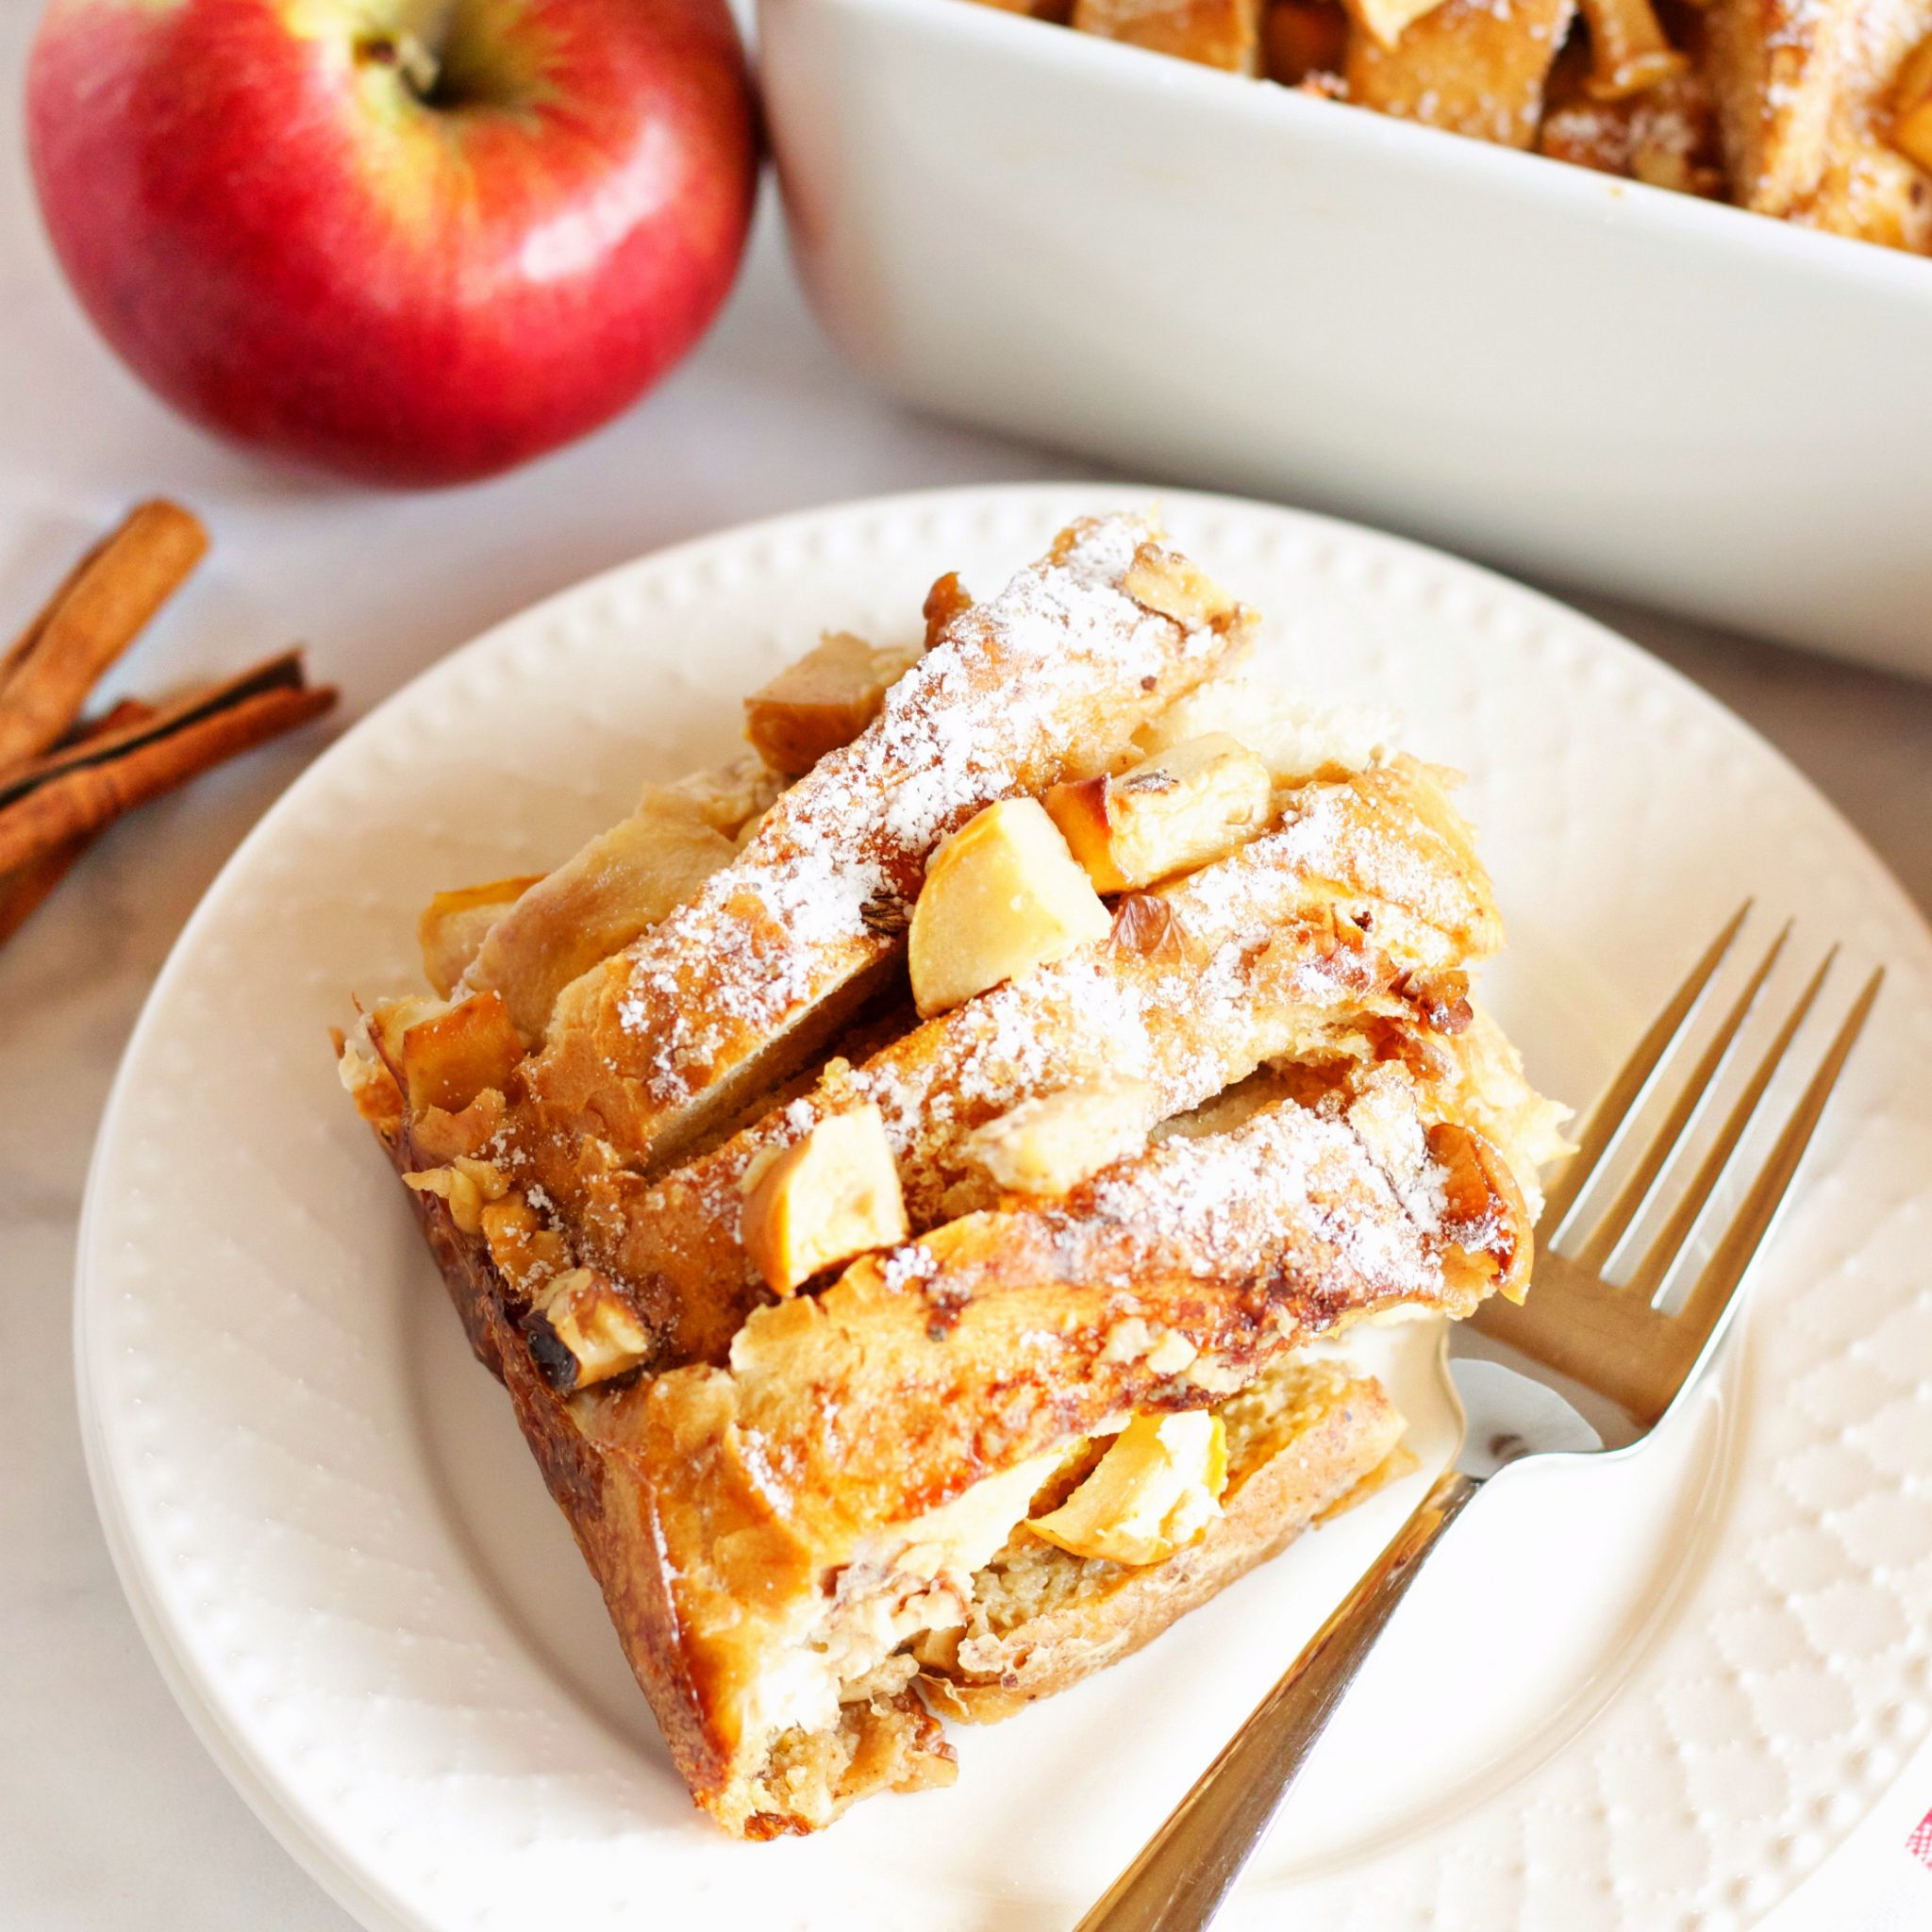 Apple Cinnamon French Toast Cerole - The Busy Baker on apple gardening, apple recipe ideas, apple curtains, apple table centerpieces, apple thanksgiving, apple pull knobs for kitchens, apple diy, apple green bedroom ideas, apple food ideas, apple painting ideas, apple lunch ideas, apple stained glass lamp, apple furniture, apple gift ideas, apple decorating ideas, apple art ideas, apple breakfast ideas, apple decoration ideas, apple wedding ideas,